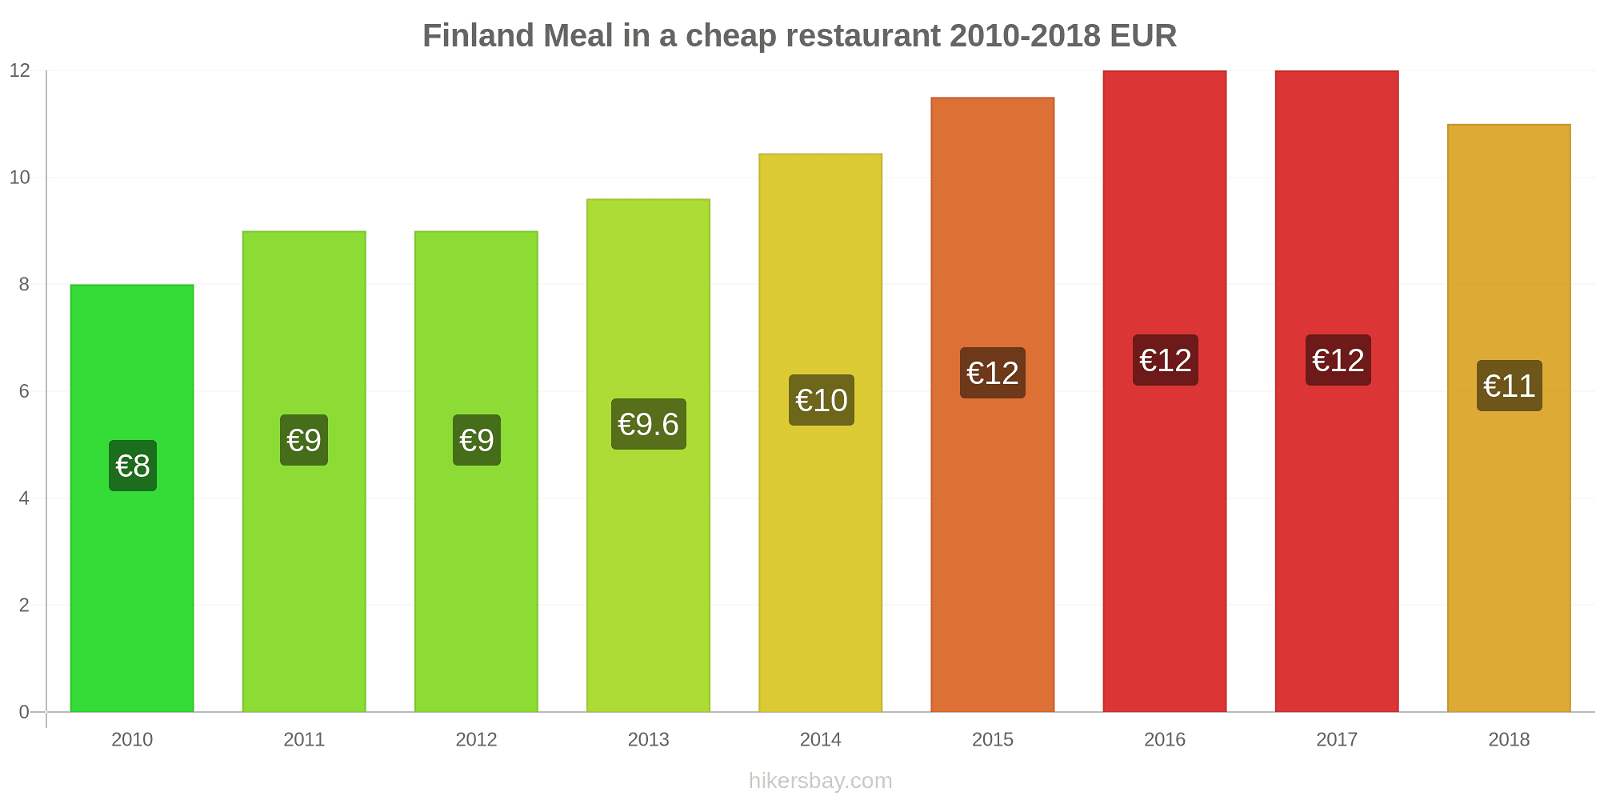 Finland price changes Meal in a cheap restaurant hikersbay.com